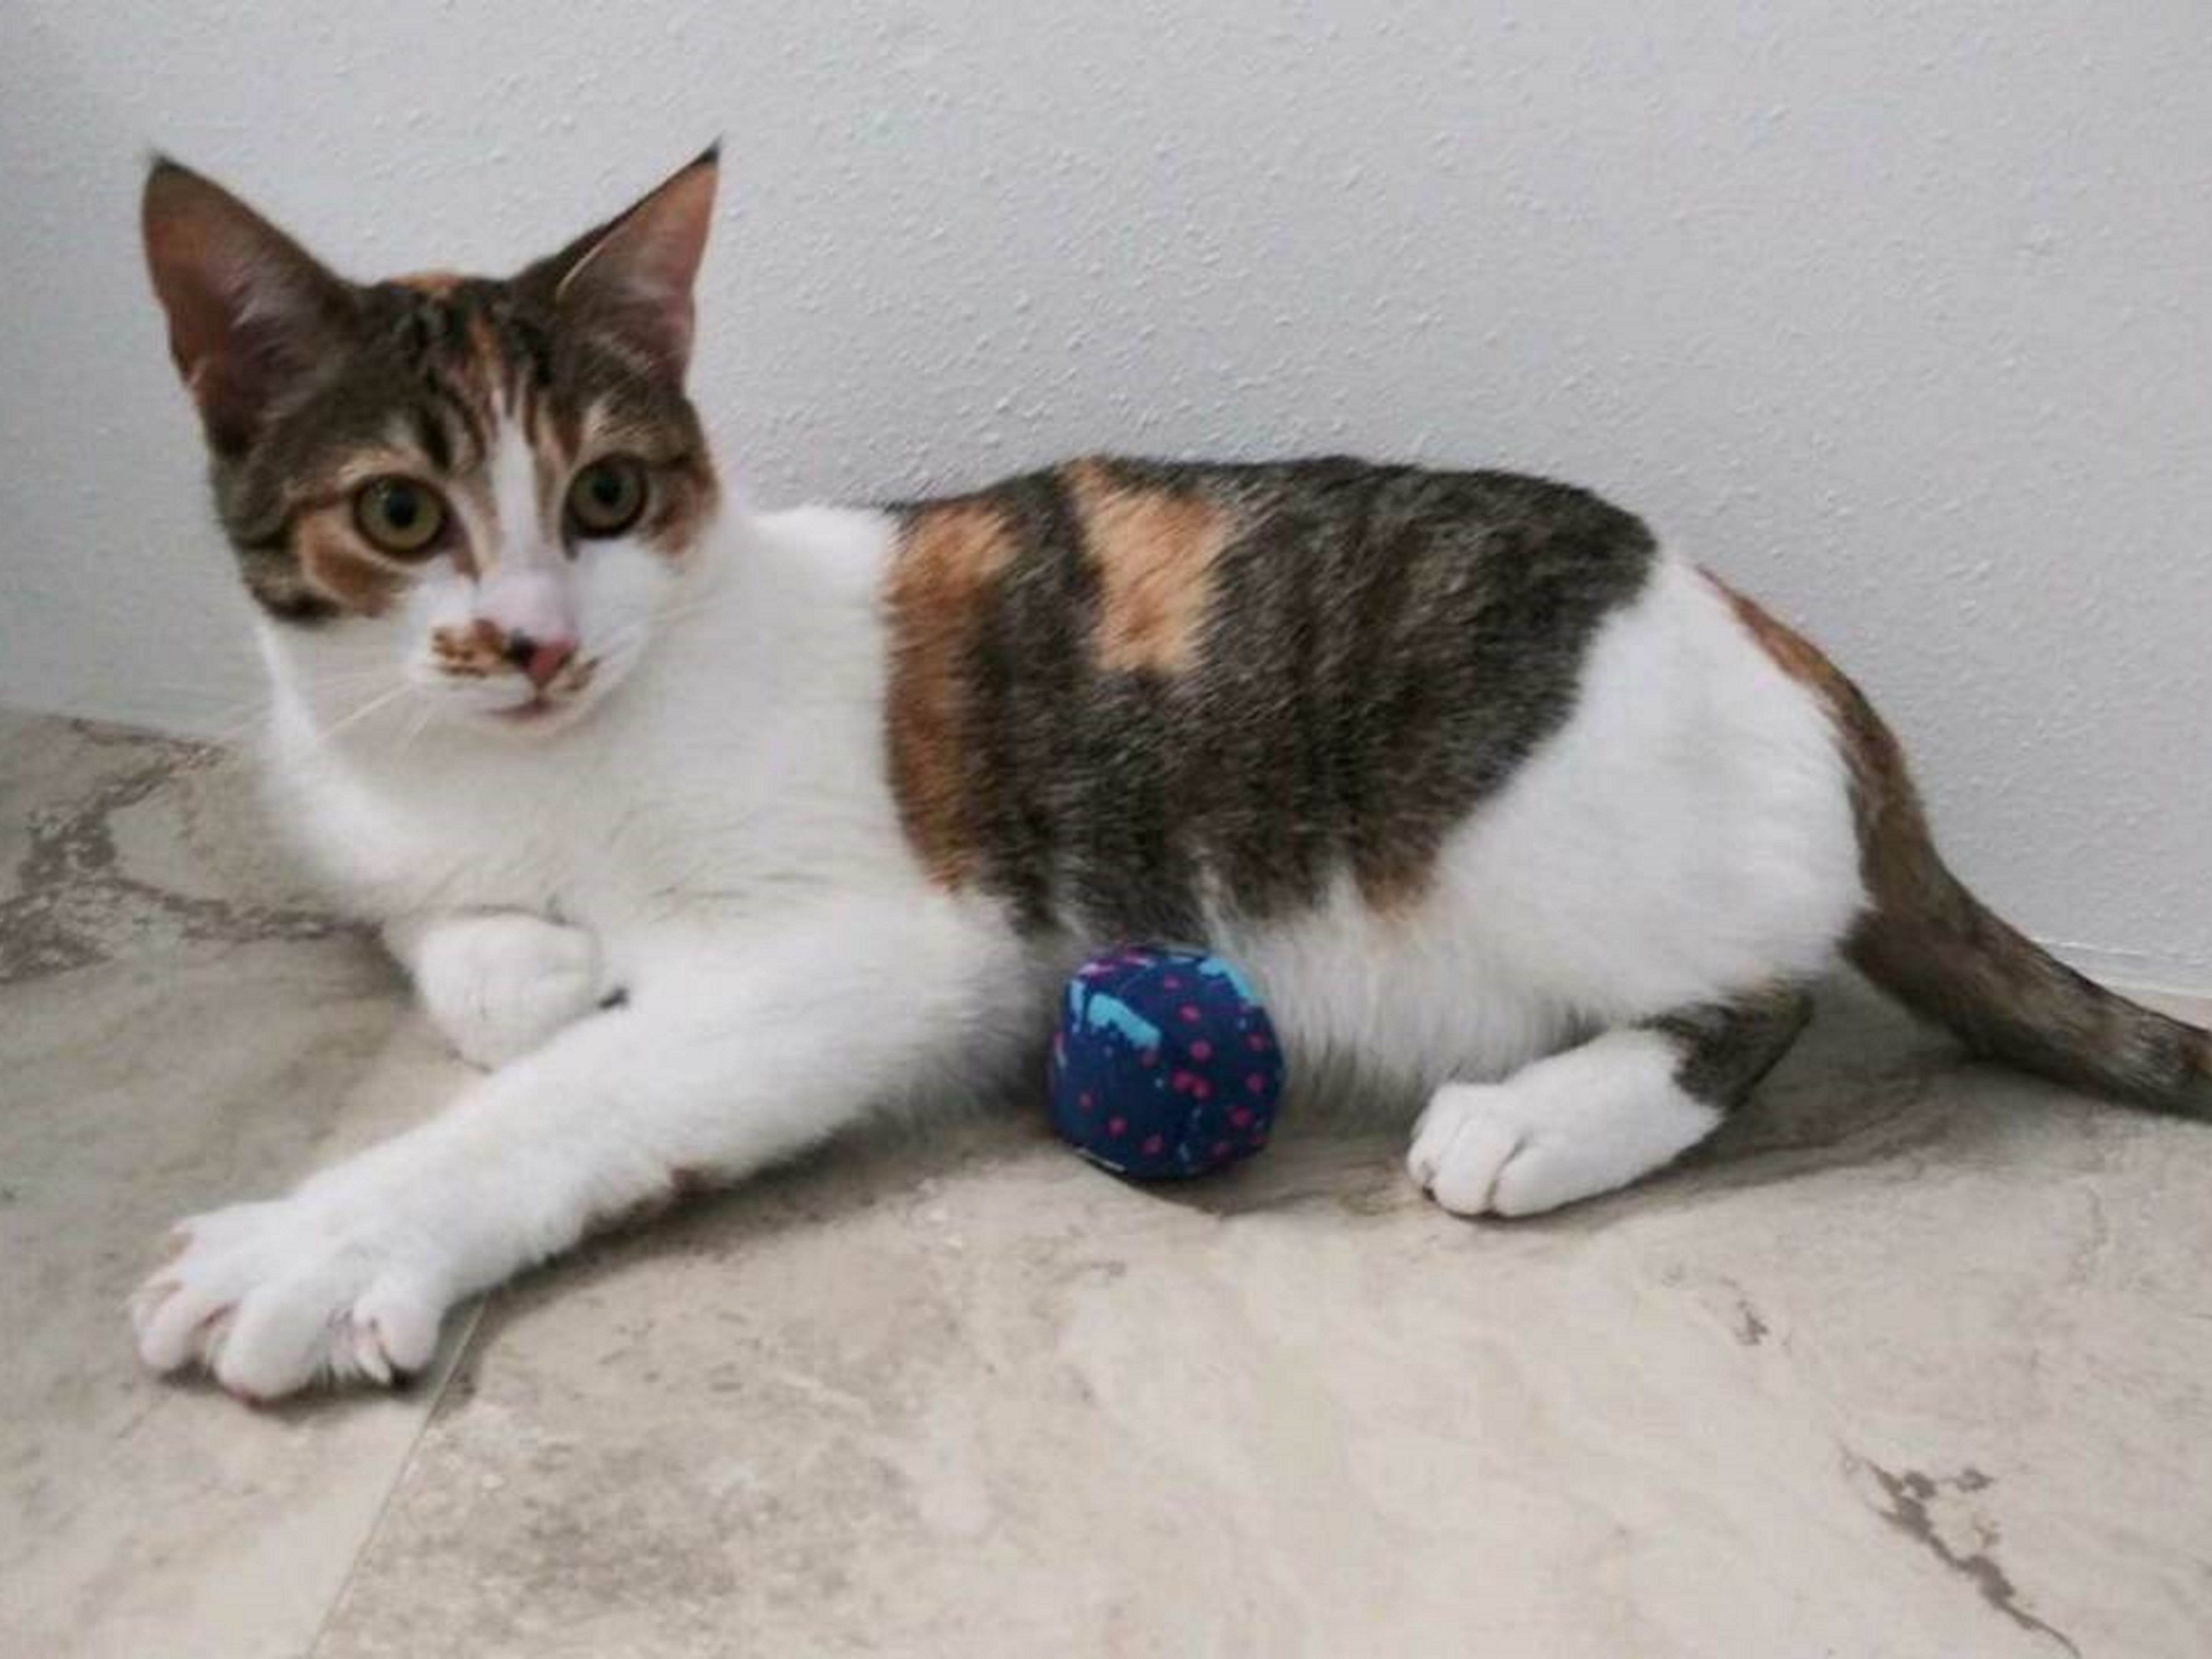 Holly is a 9-month-old, female, easy going and sweet kitten. She'll need time to adjust to her new home, but she likes attention and loves to be petted while gently playing. Raining Cats N Dogs adoptions include spay/neuter services, vaccines and vetting as needed. Call 232-6299. Go to http://rainingcatsndogs.rescuegroups.org.